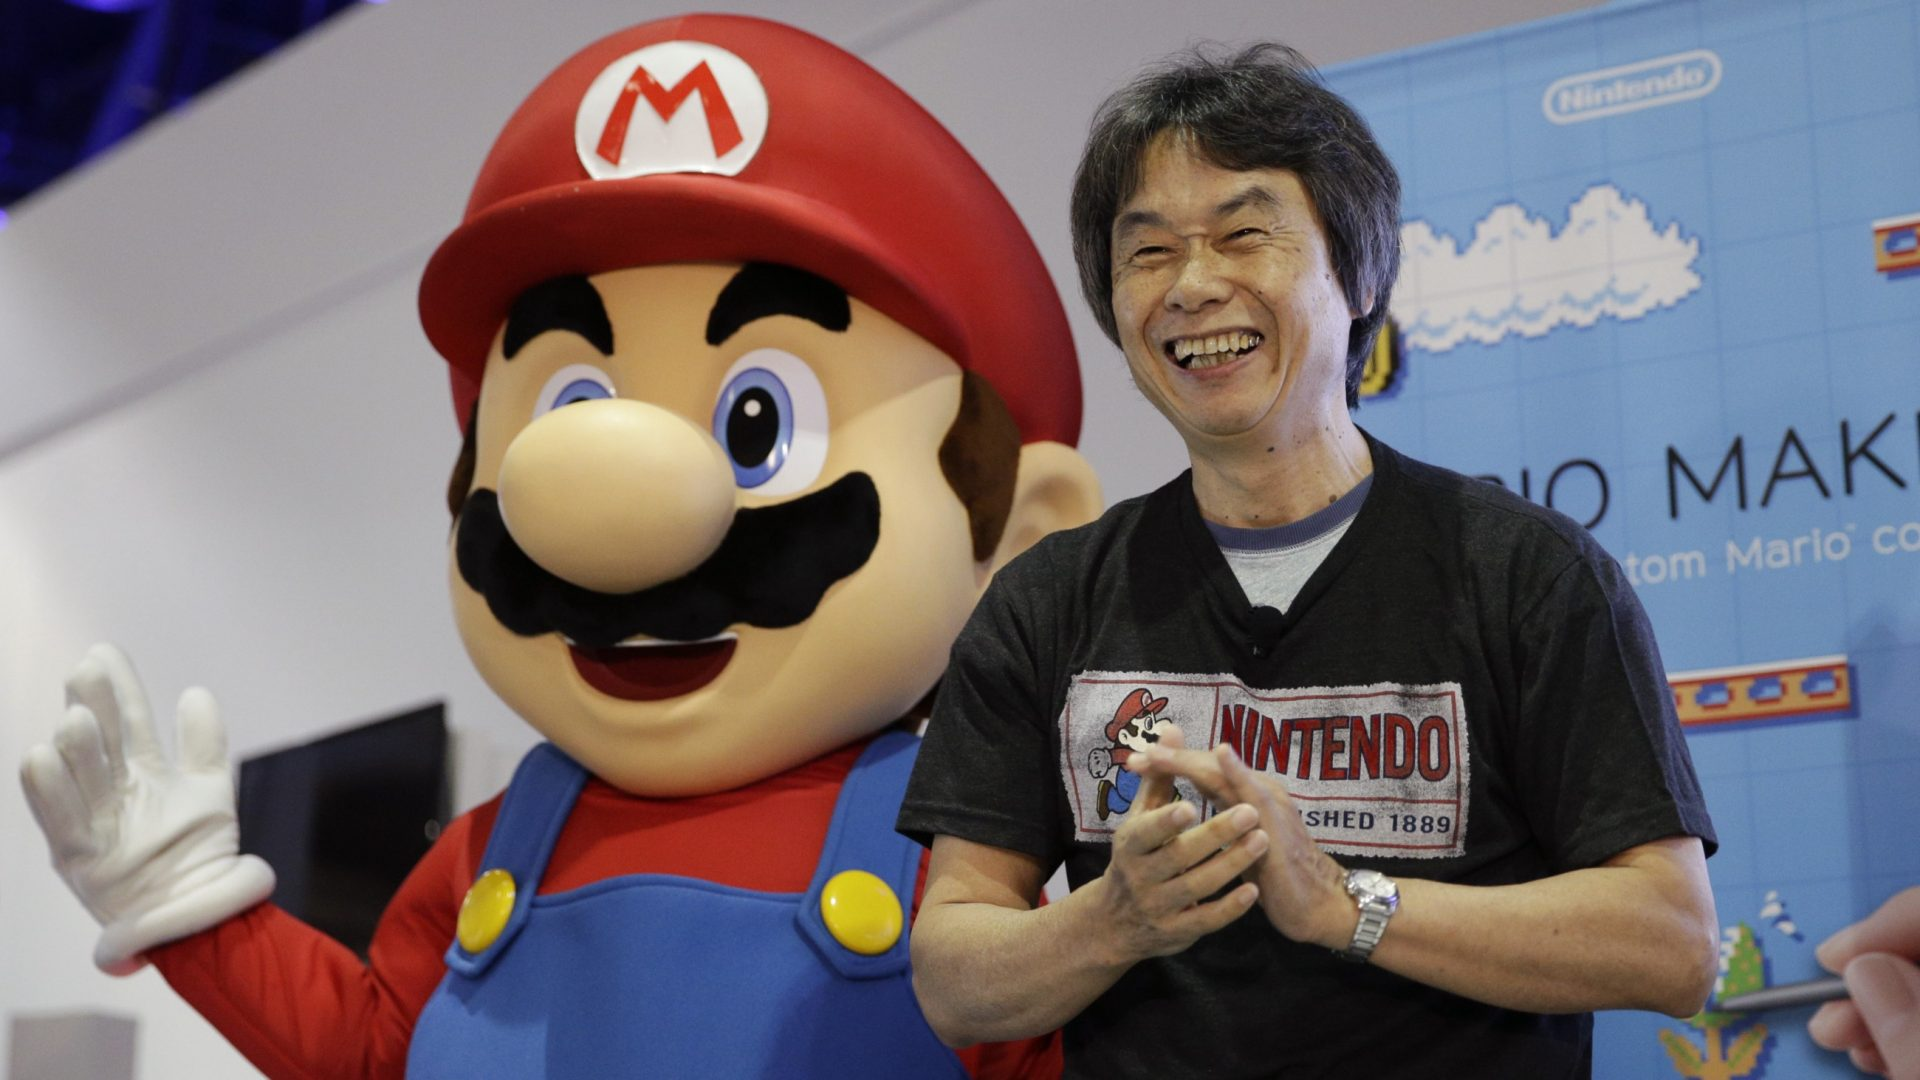 Creator Mario reveals In fact he was only a young man at the age of 20